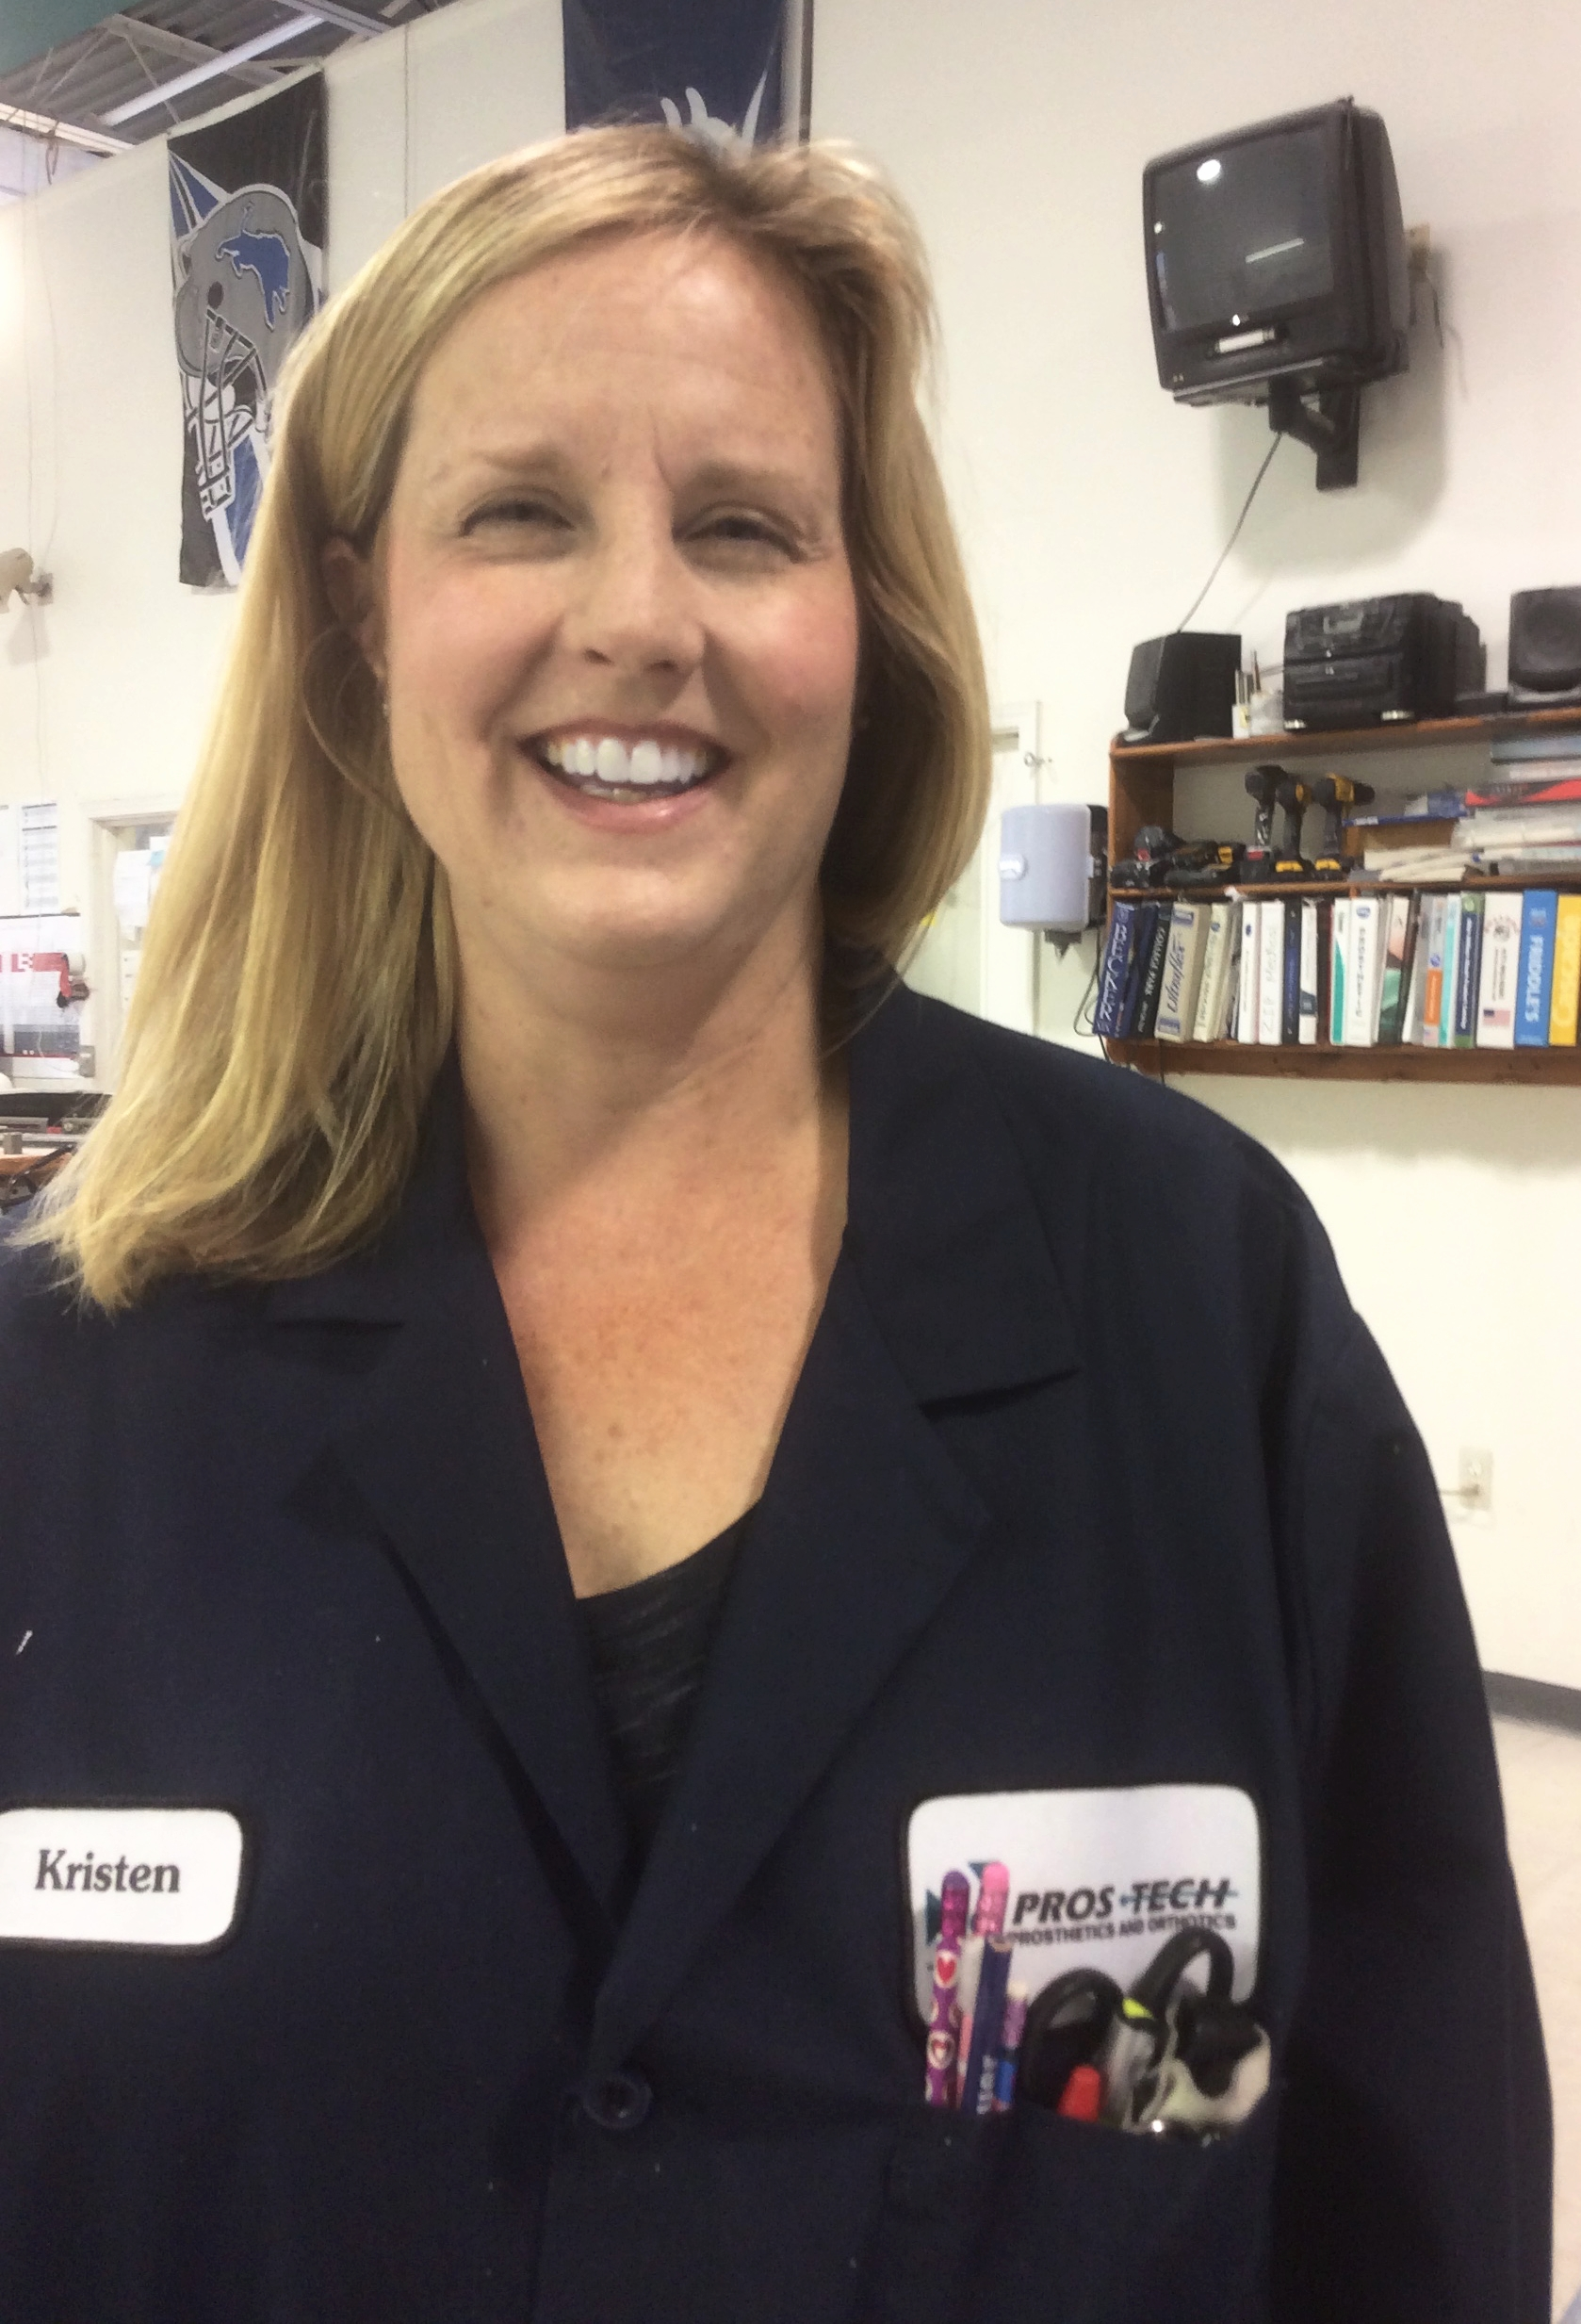 Kristen Border  C.O  Bachelors of Science and Human Biology from Michigan State University  25 Years in Prosthetics and Orthotics.  Specialty: Pediatrics  Interests: Human Society International  Hobbies: Gardening and Crafts.